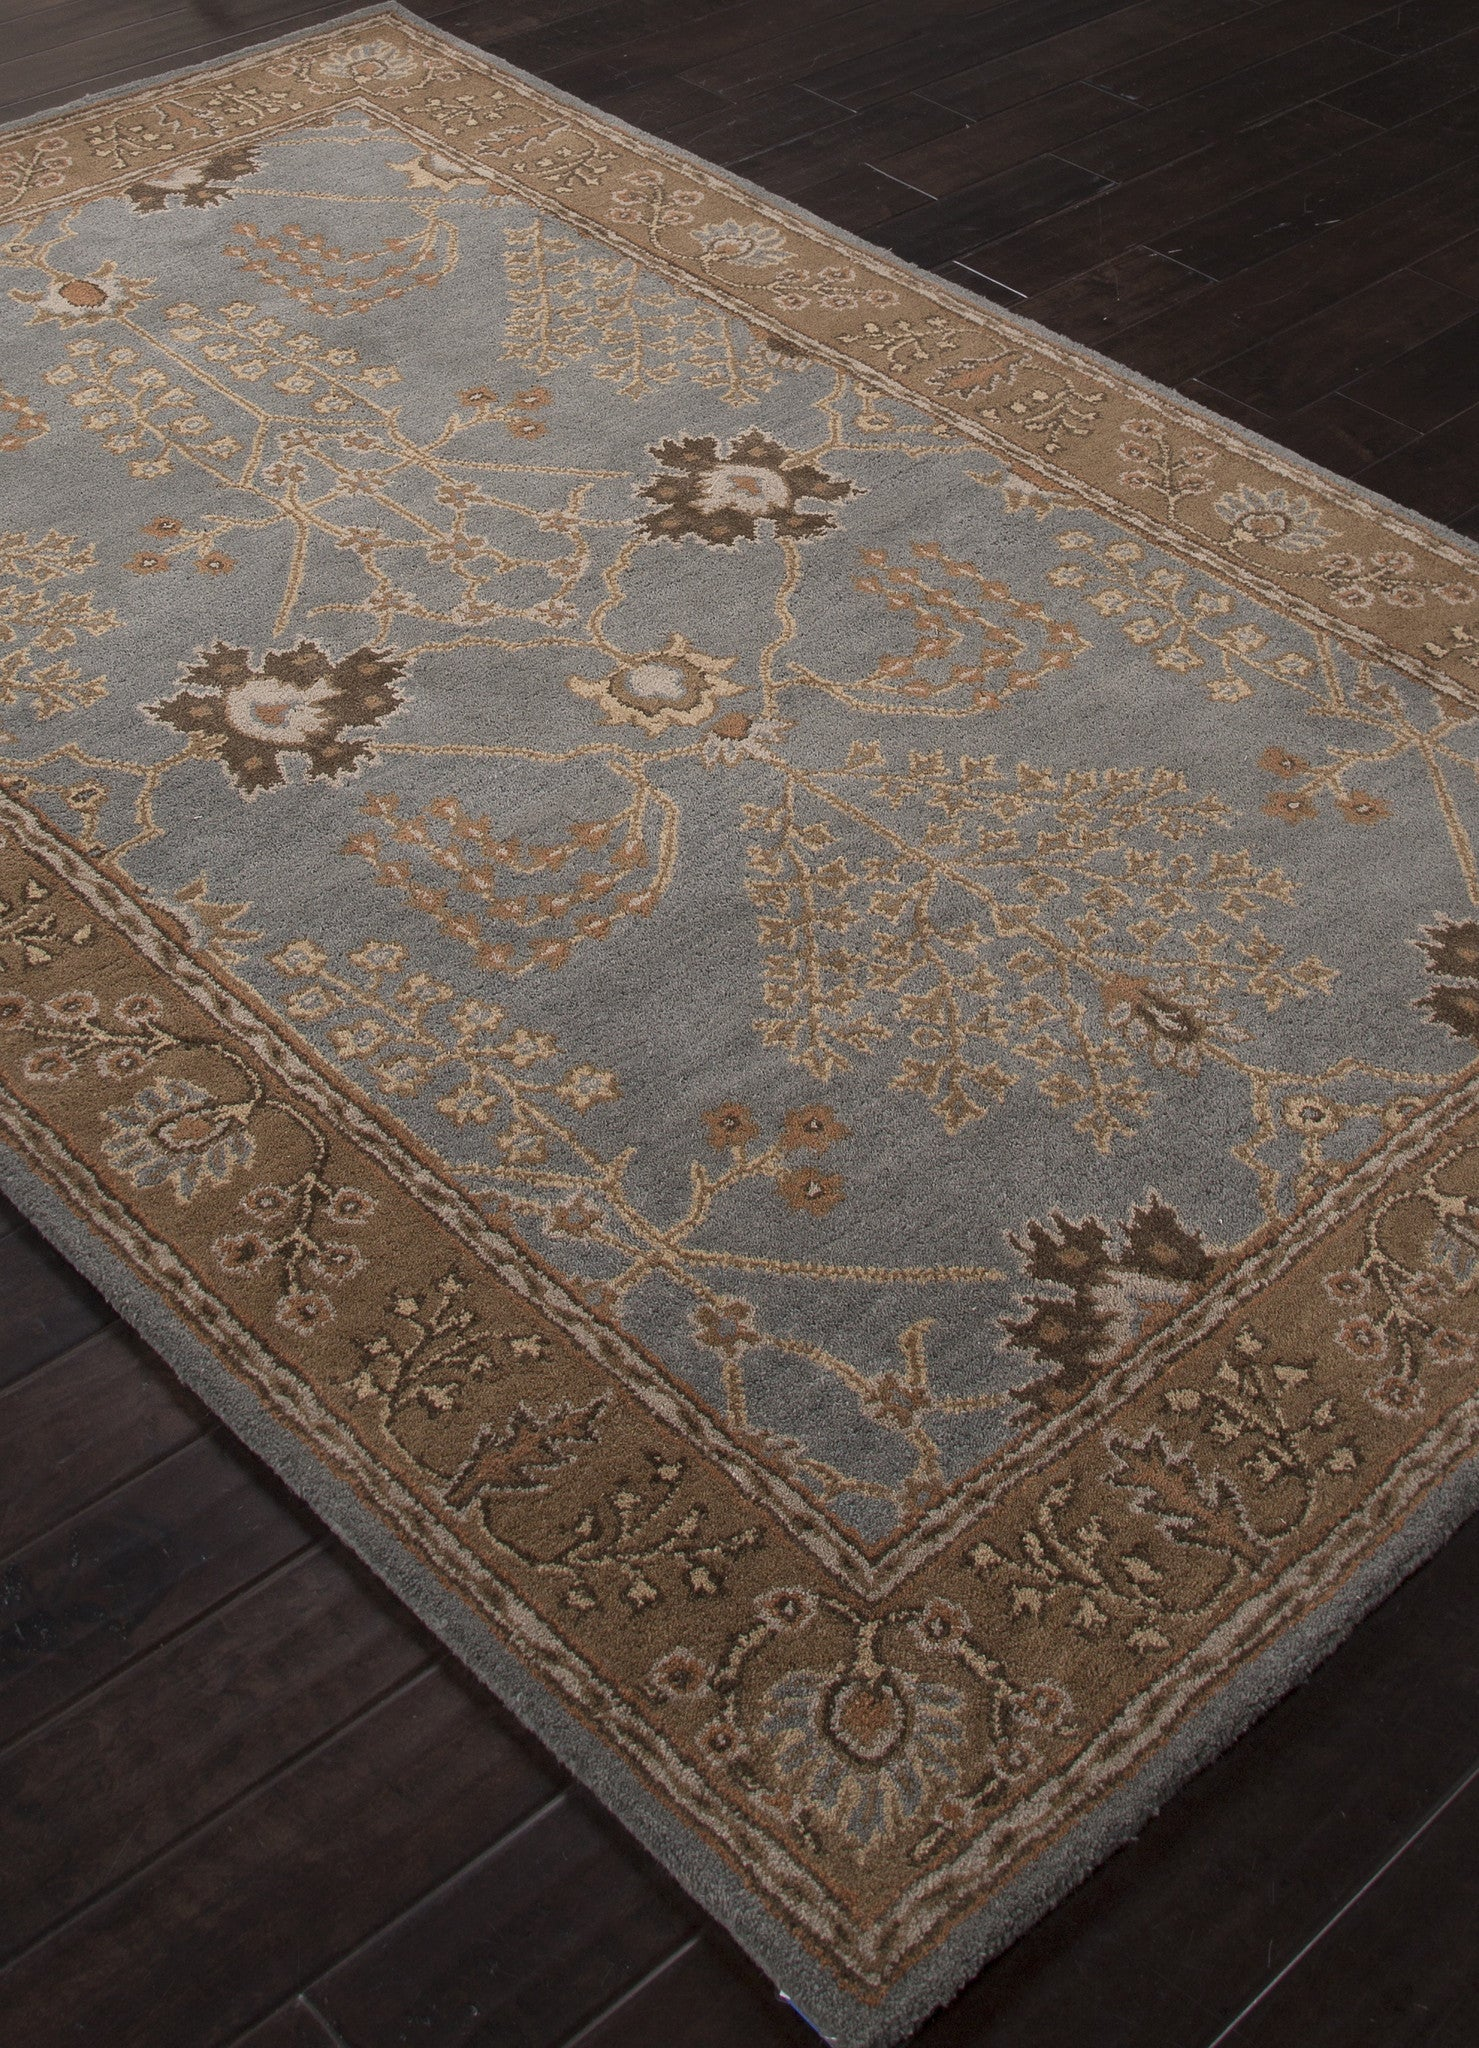 Brown And Blue Patterned Bathroom Rugs: Jaipur Rugs Transitional Arts And Crafts Pattern Blue